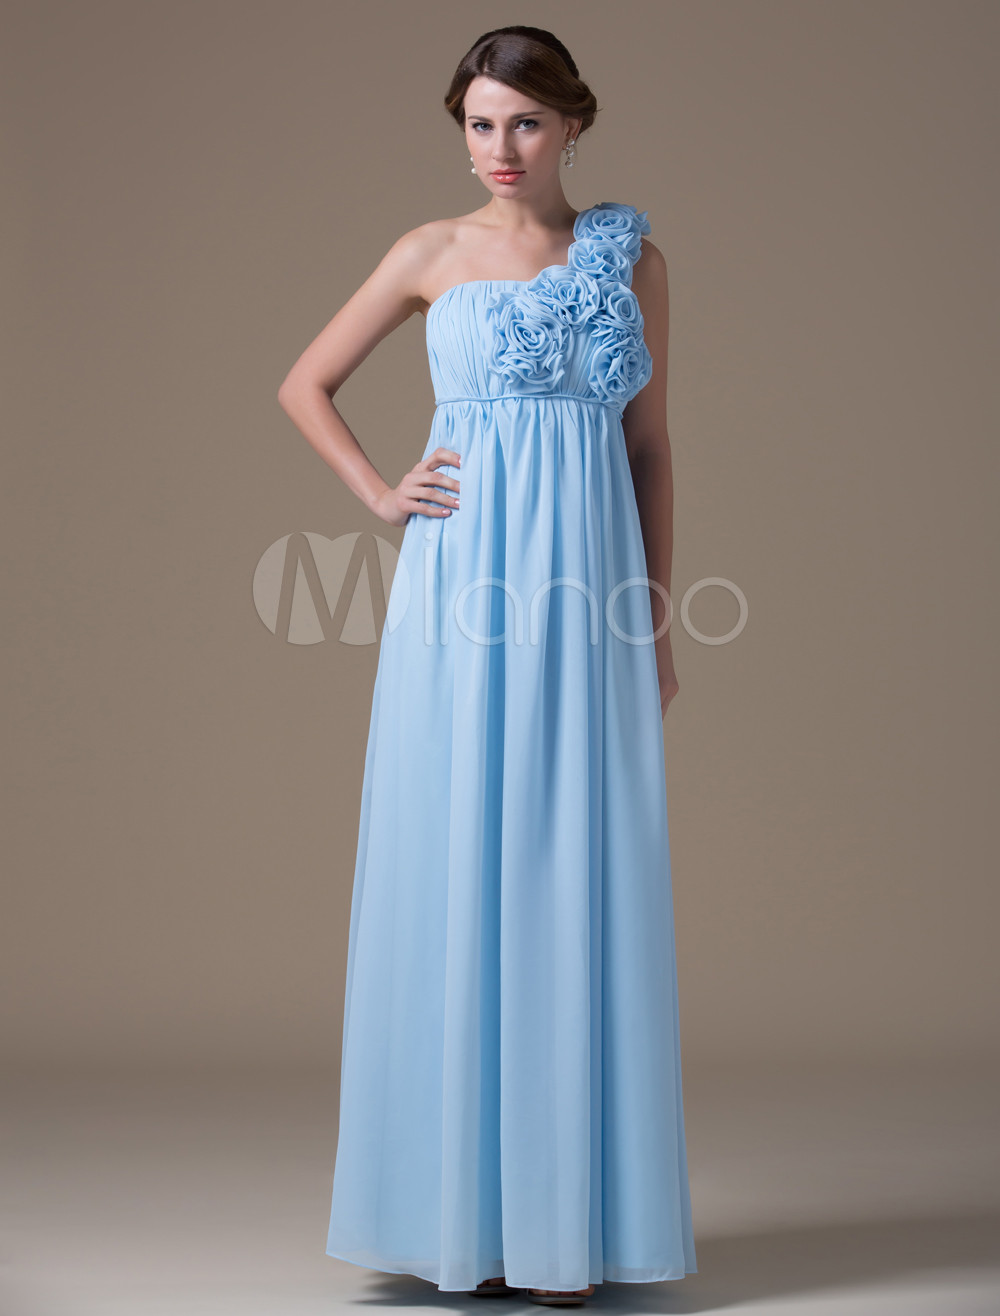 Cinerous A-line One-shoulder Chiffon Floor-length Womens Maternity Bridesmaid Dress